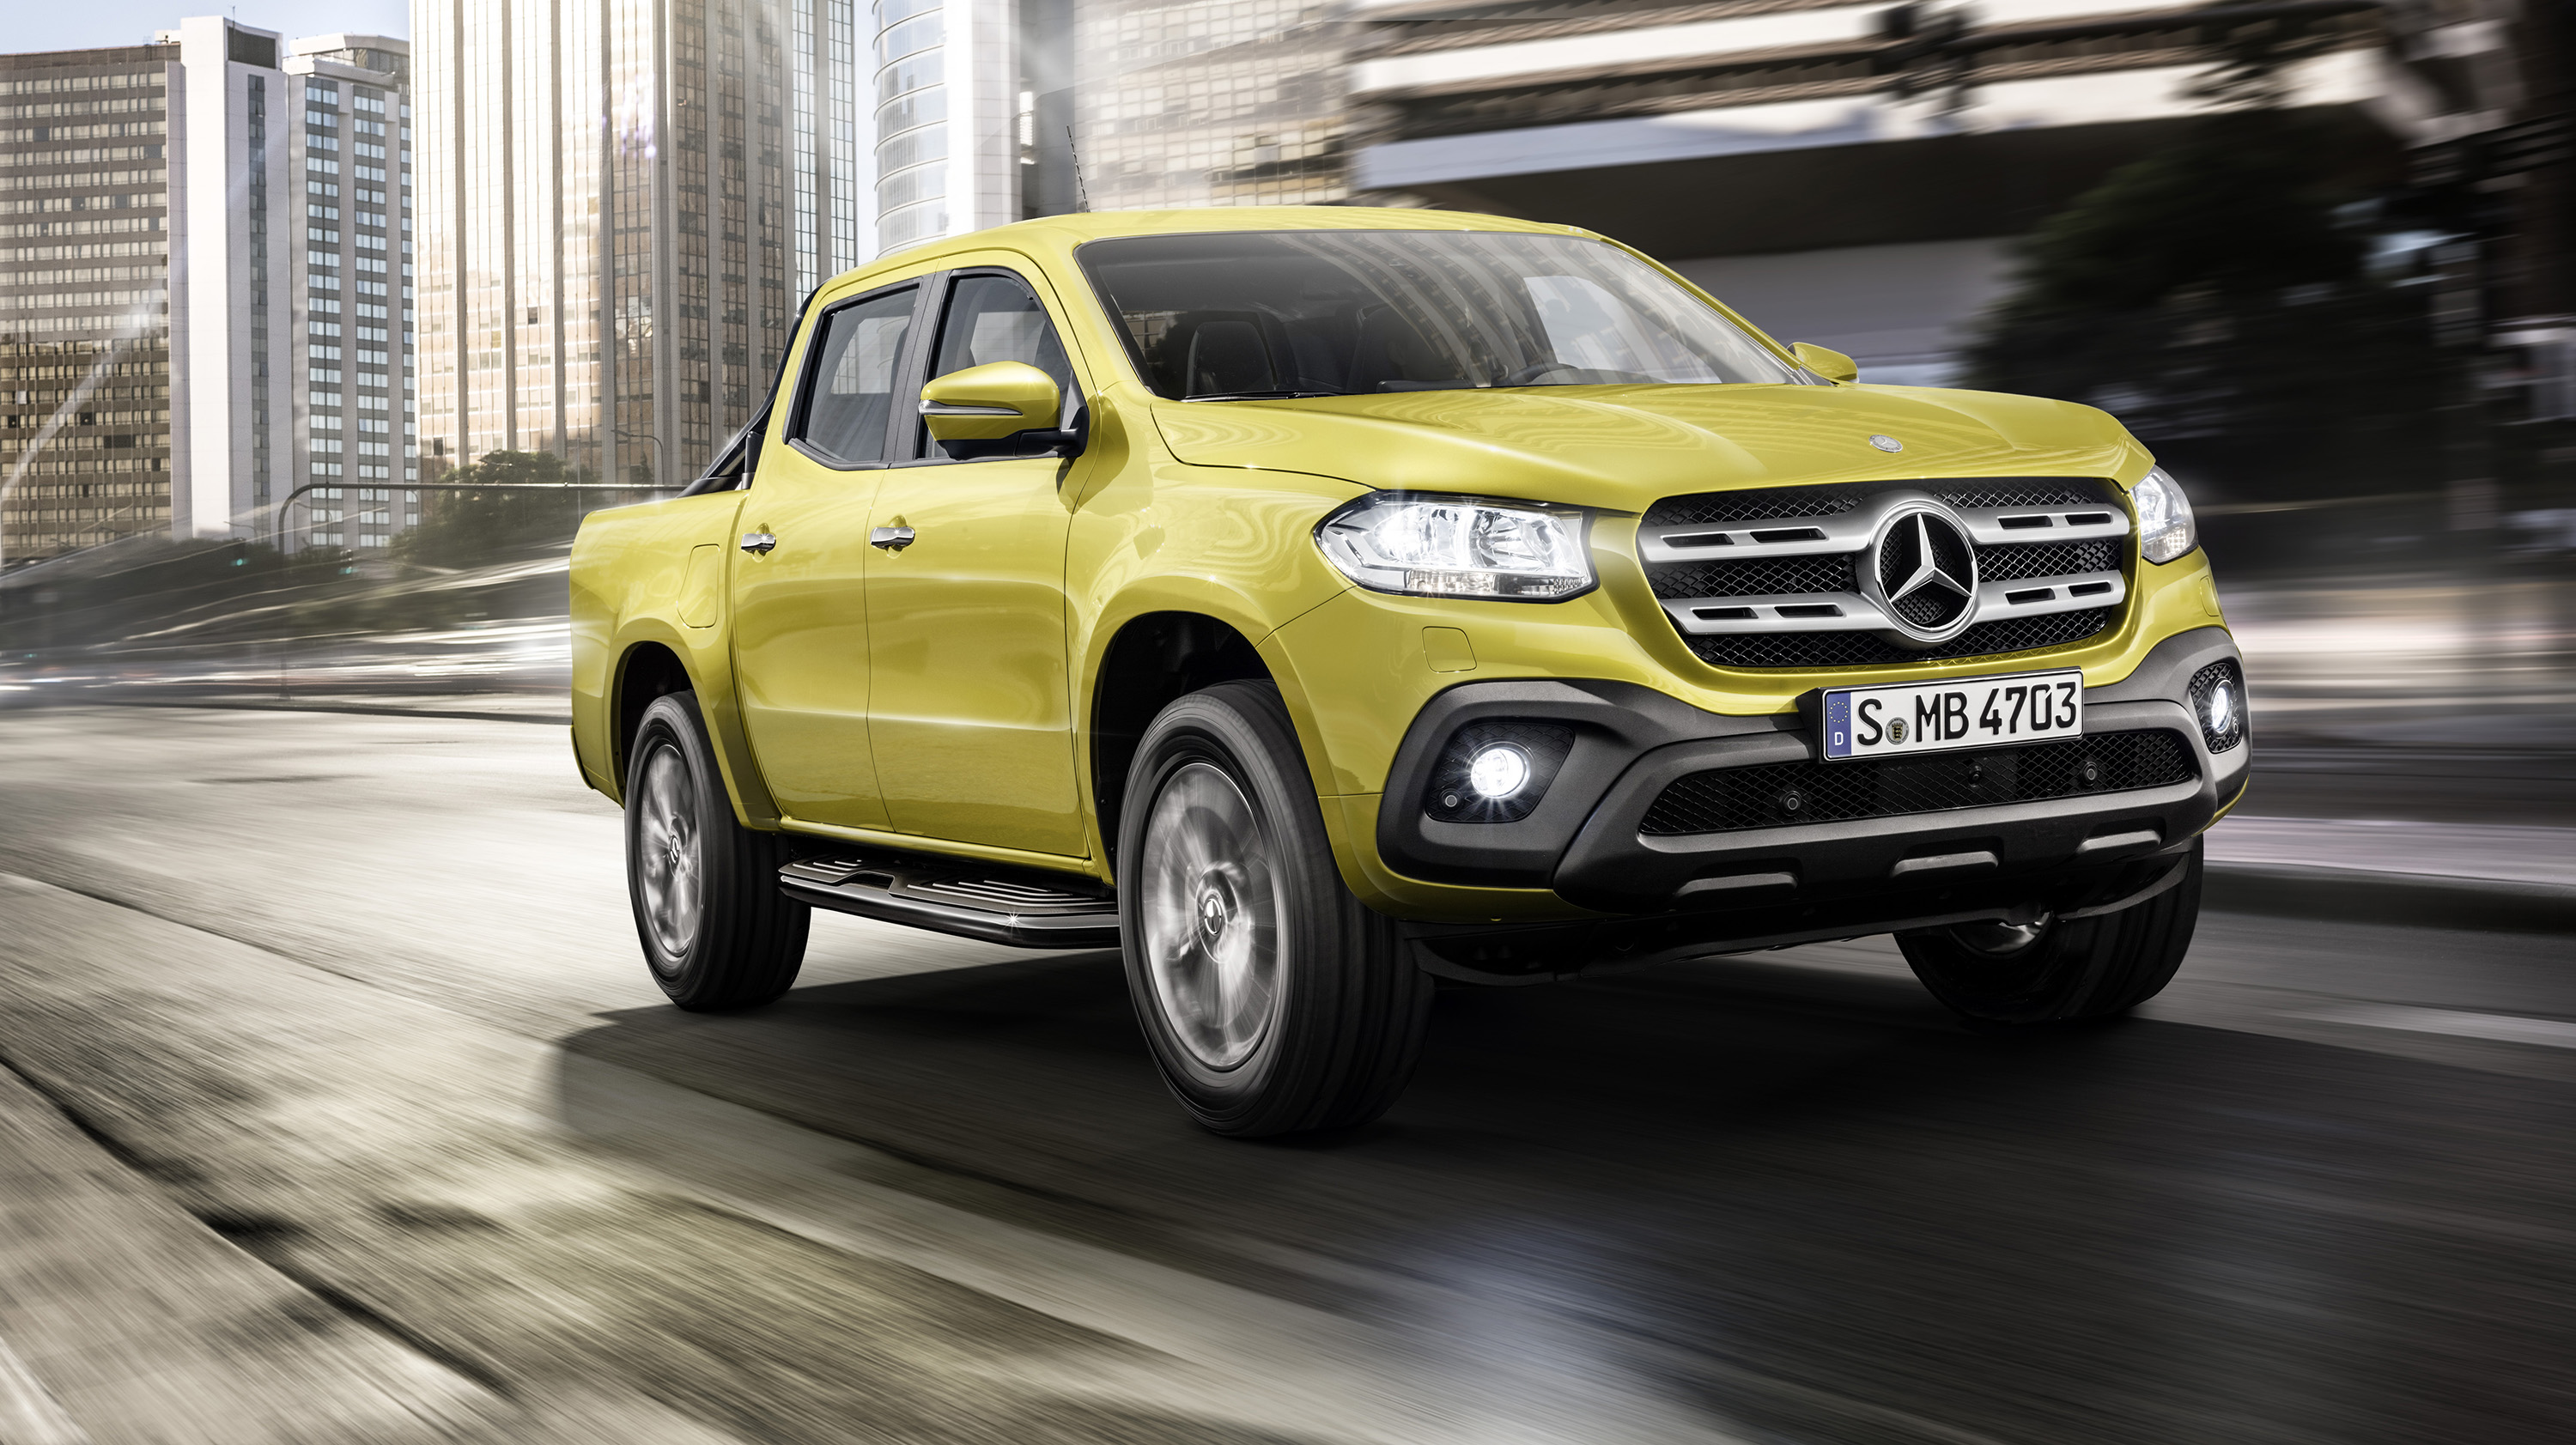 2018 mercedes benz x class revealed photos 1 of 57. Black Bedroom Furniture Sets. Home Design Ideas